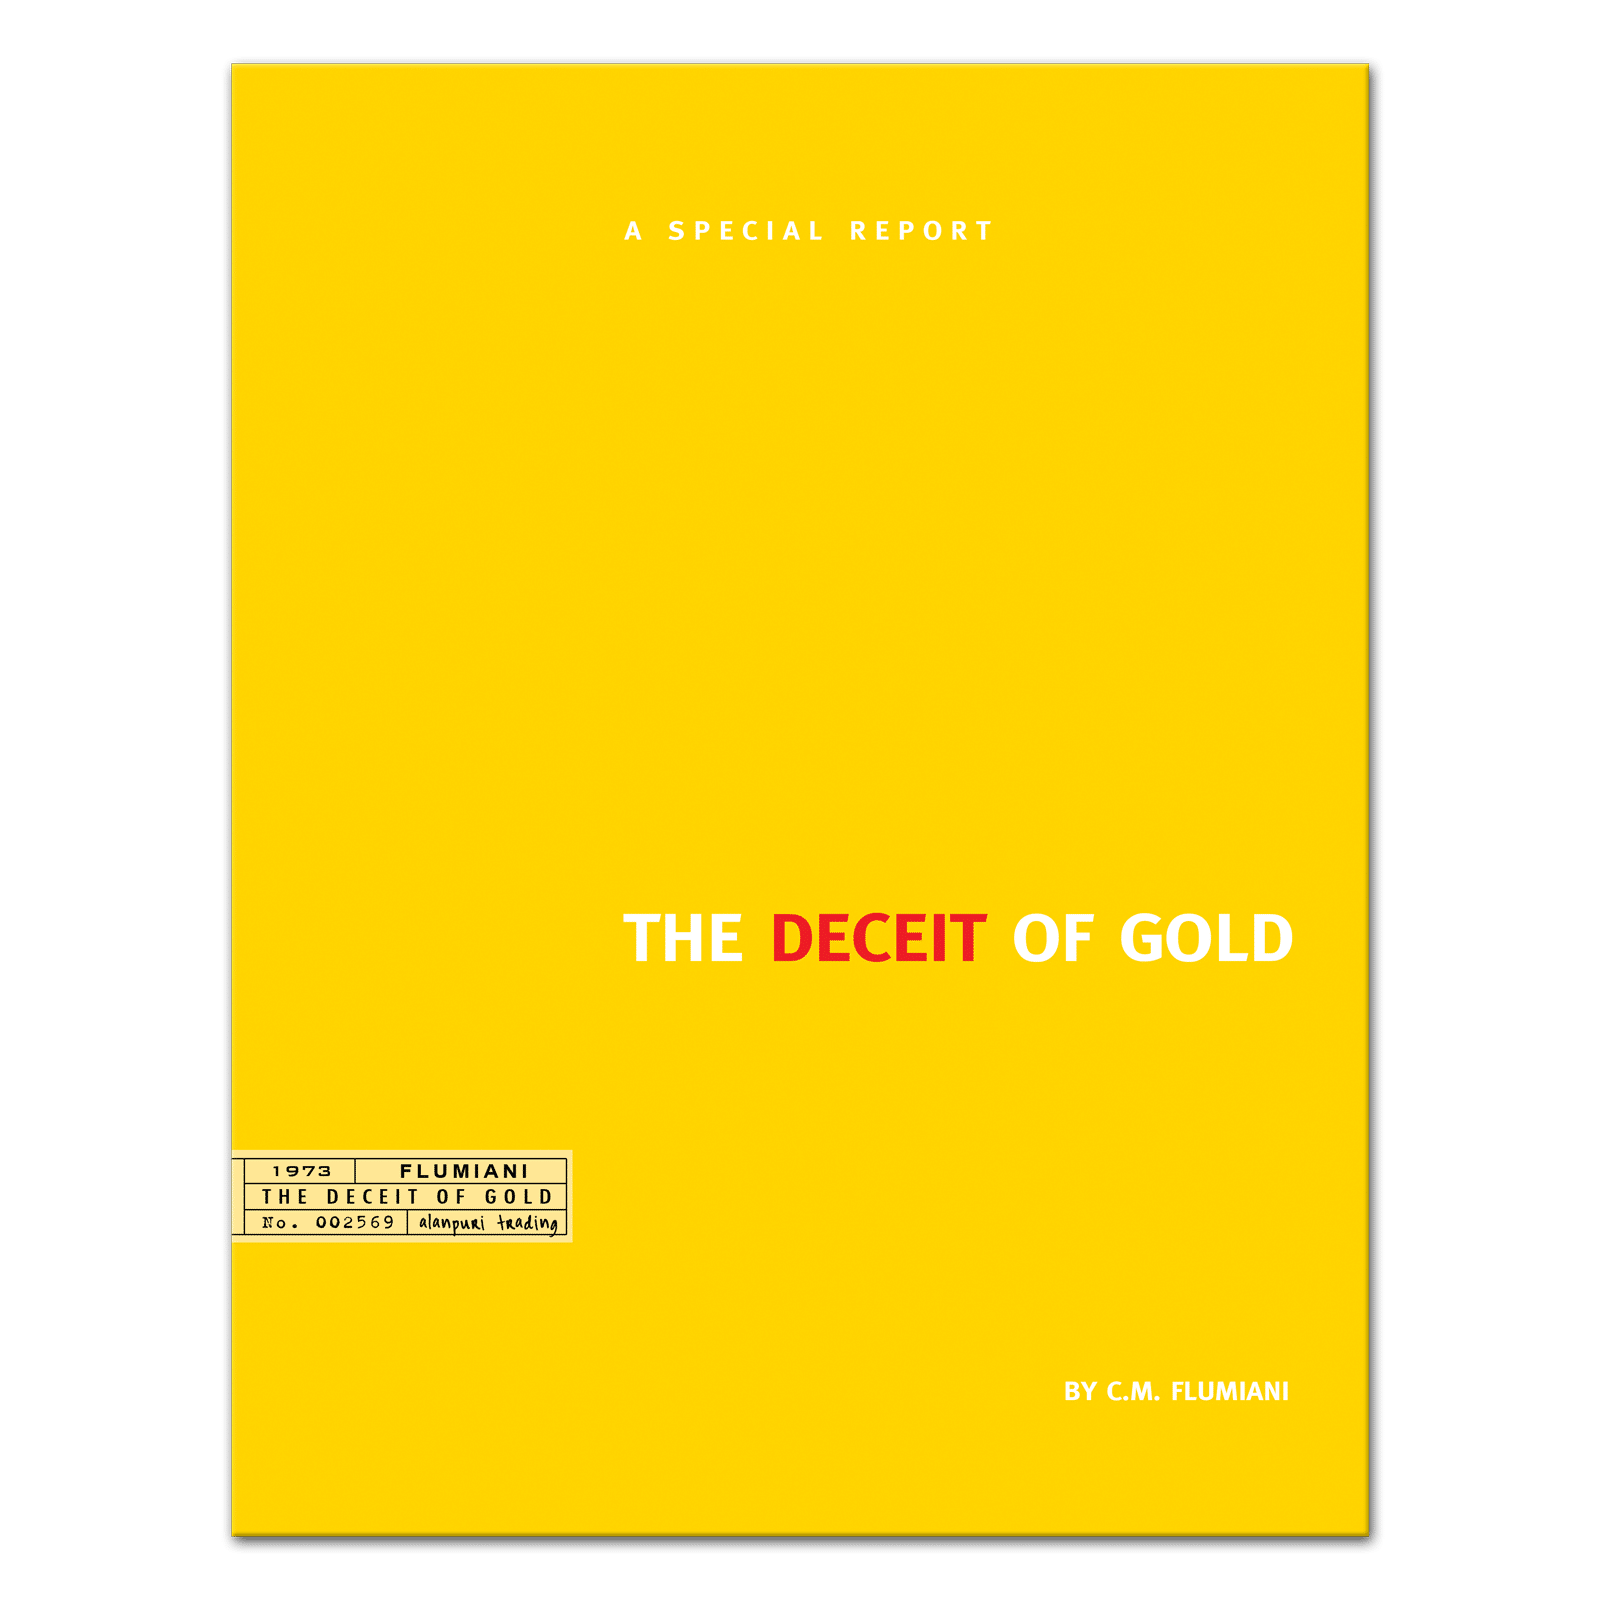 The Deceit of Gold by C.M. Flumiani